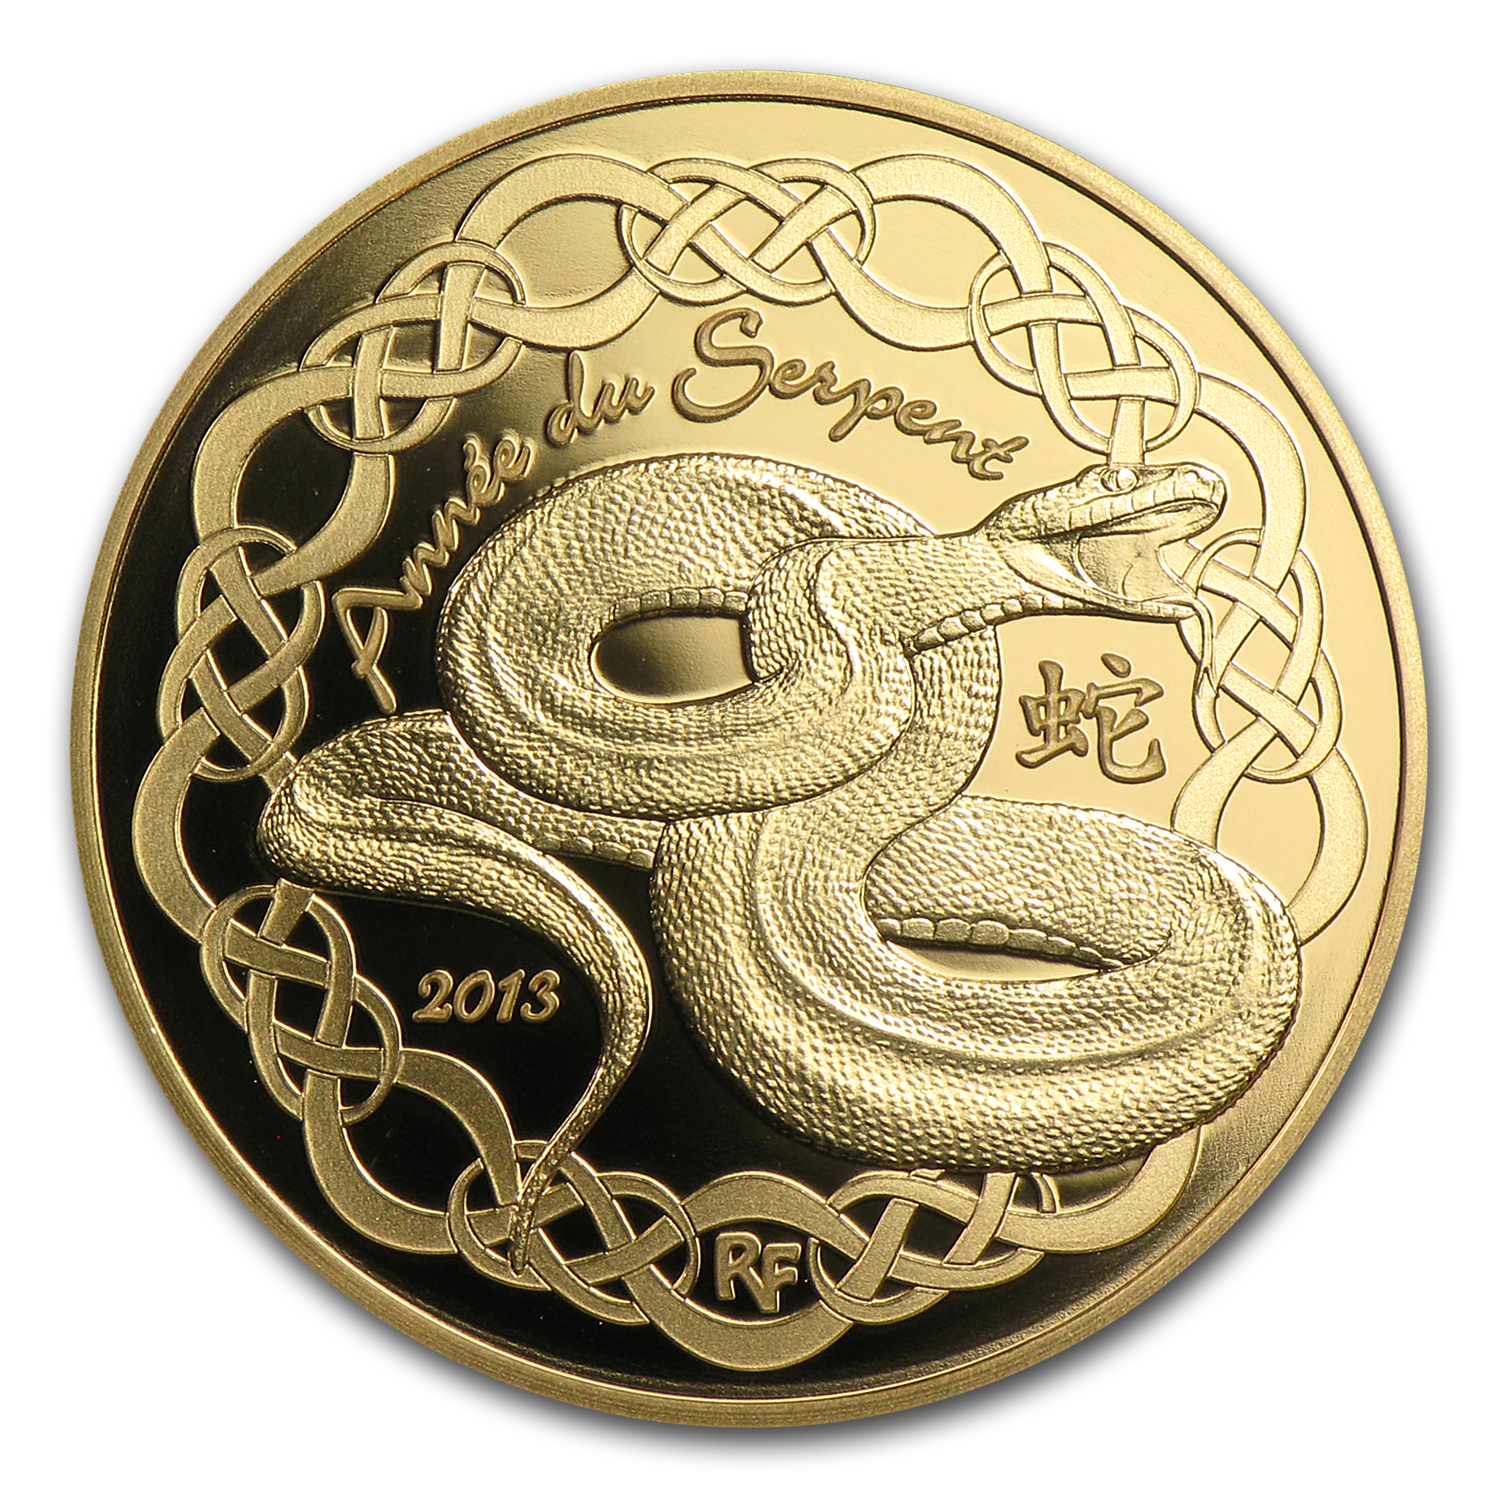 2013 1/4 oz Proof Gold €50 Year of the Snake Lunar Series